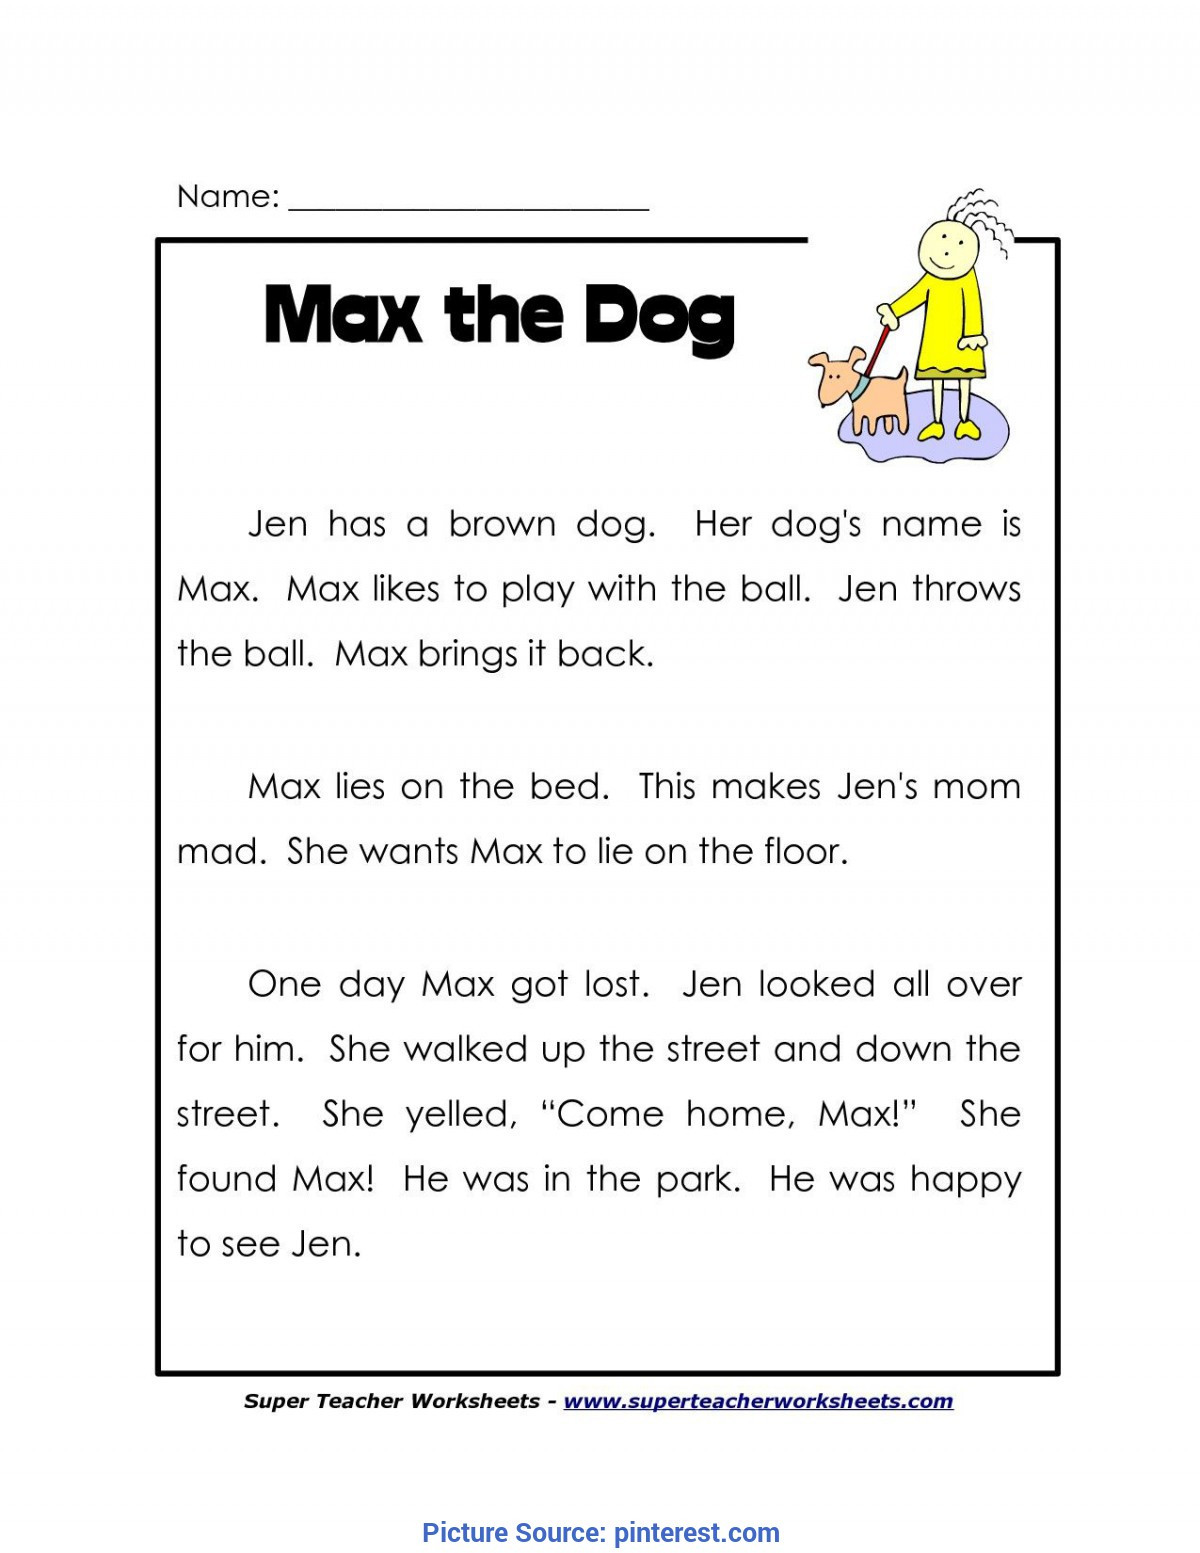 Free First Grade Reading Worksheets 1989 Generationinitiative Page 2 Preparation for Working